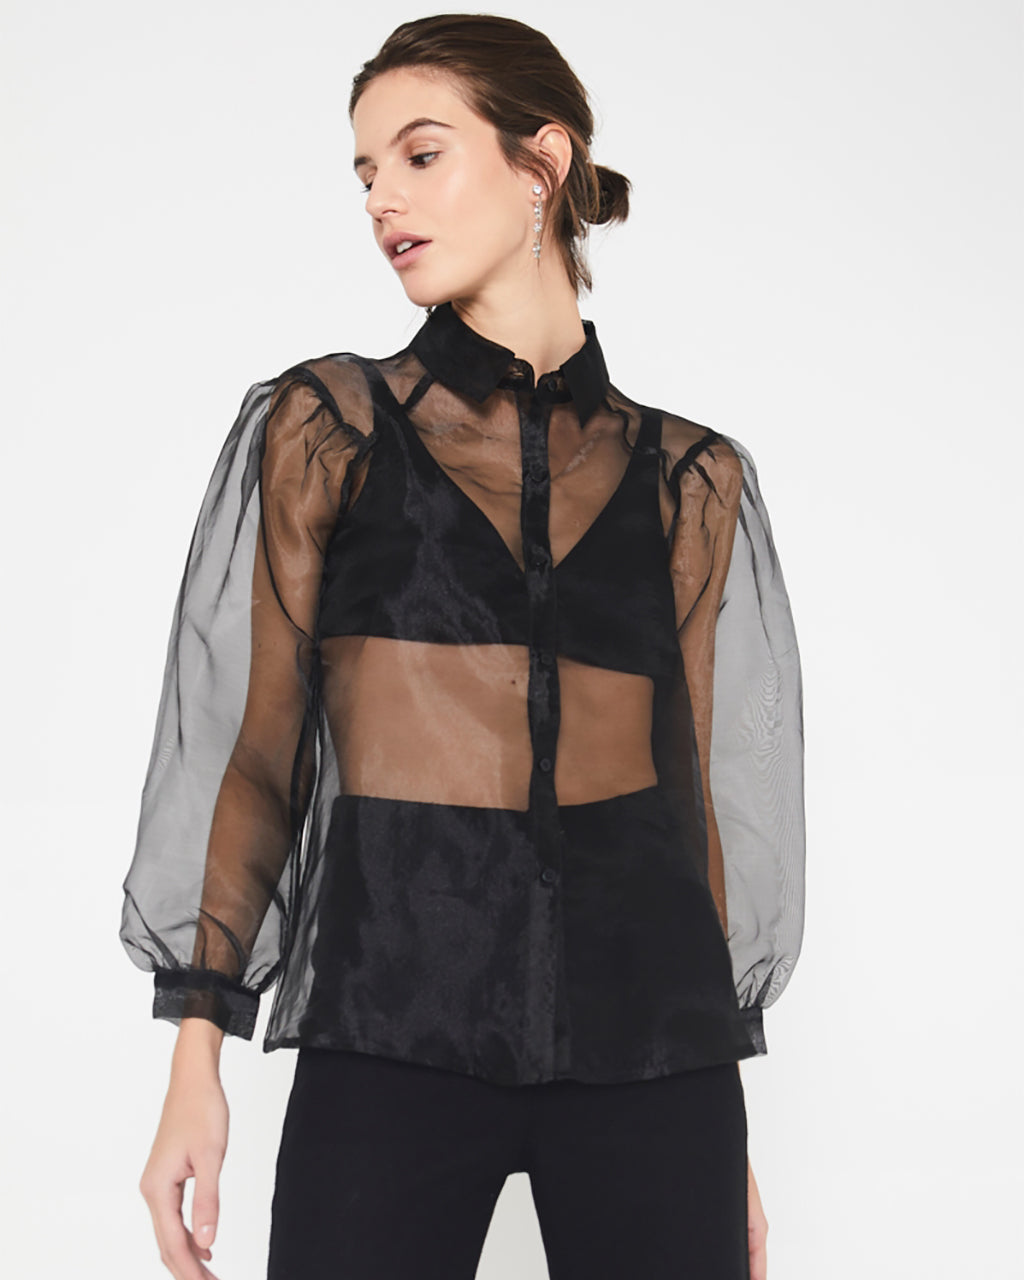 model wearing transparent black blouse with black bra underneath